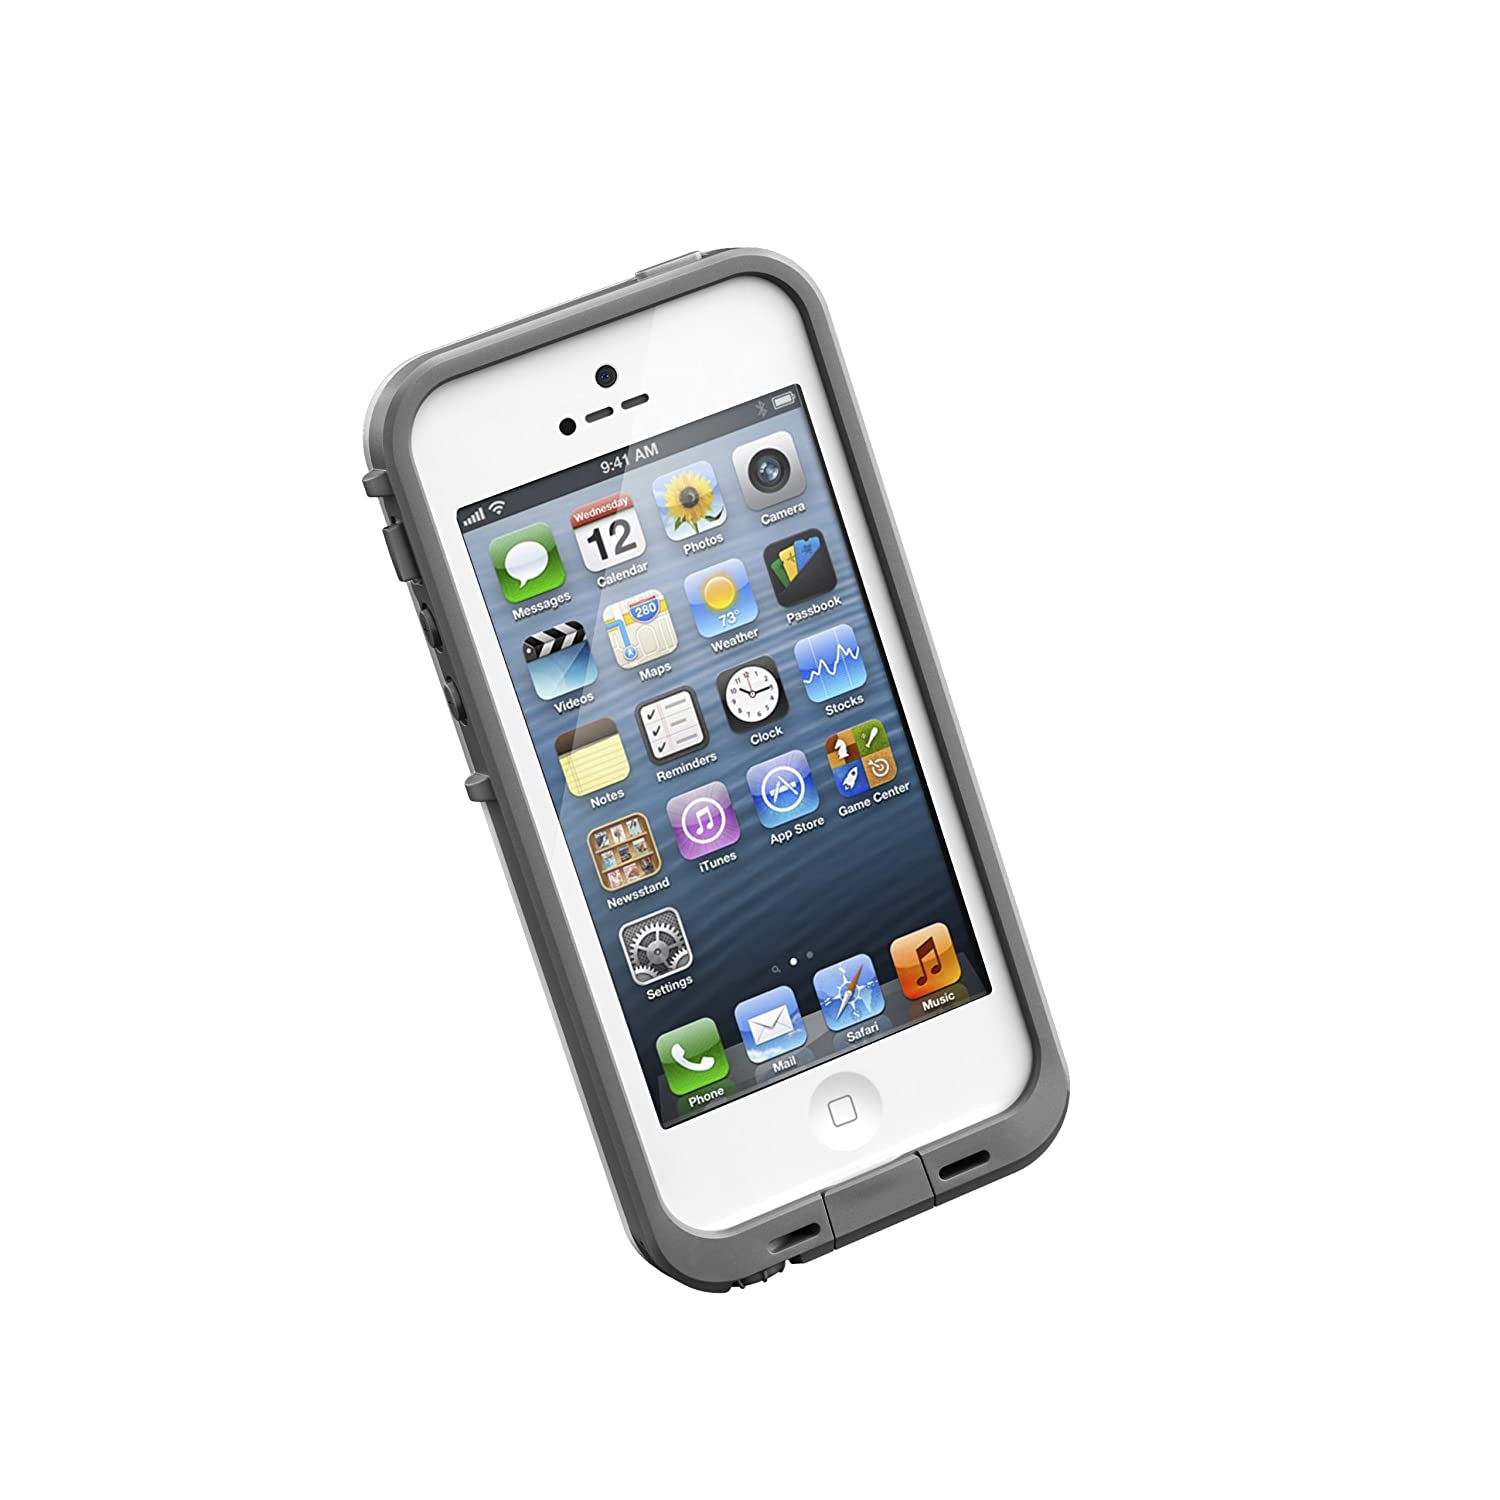 Shop Cell Phones And Accessories At Amazoncom You39ll Find Great The Most Complete Printed Circuit Board Repair Kit Lifeproof Fre Iphone 5 Waterproof Case Retail Packaging White Grey Discontinued By Manufacturer